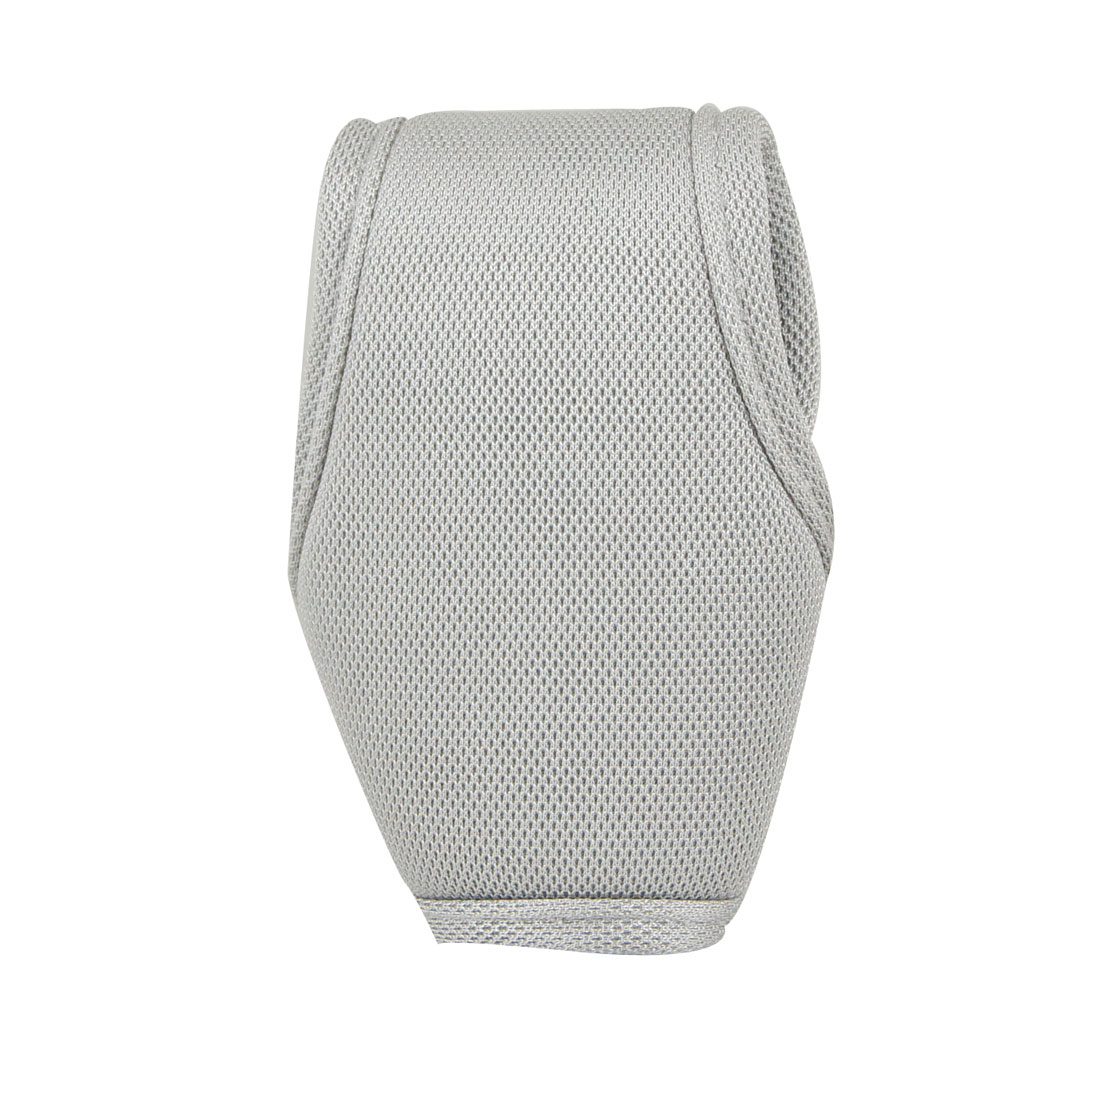 Car Auto Antislip Dots Decor Grey Sponge Nylon Hook Loop Closure Shift Knob Boot Cover